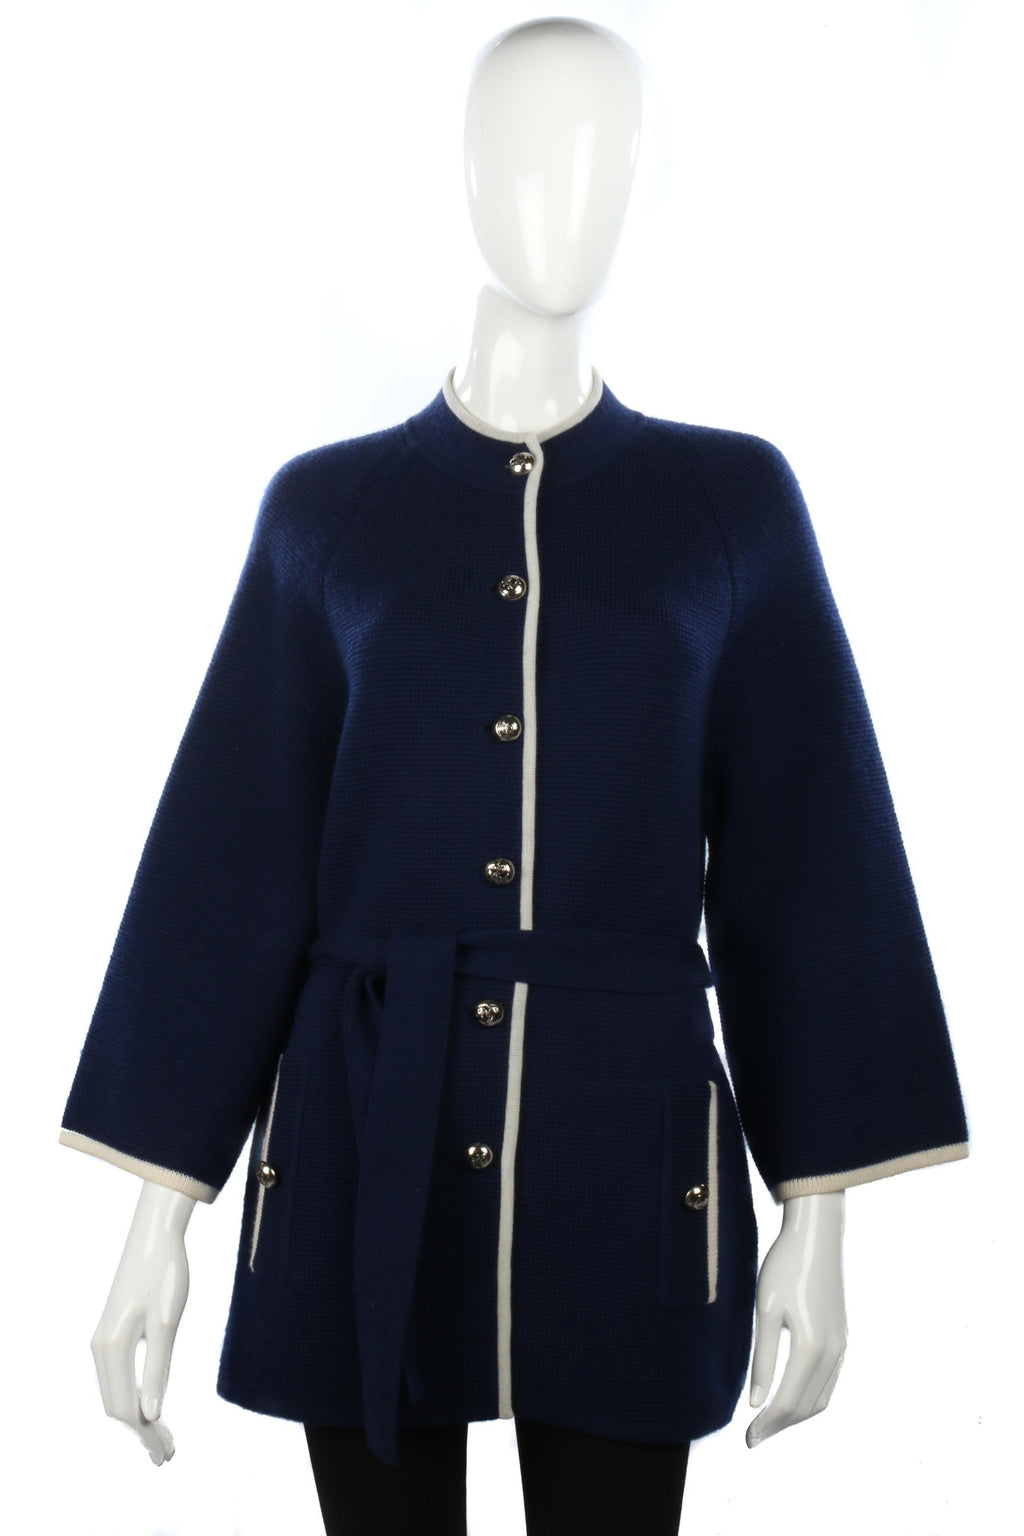 Kai Ming knitted navy jacket size 16